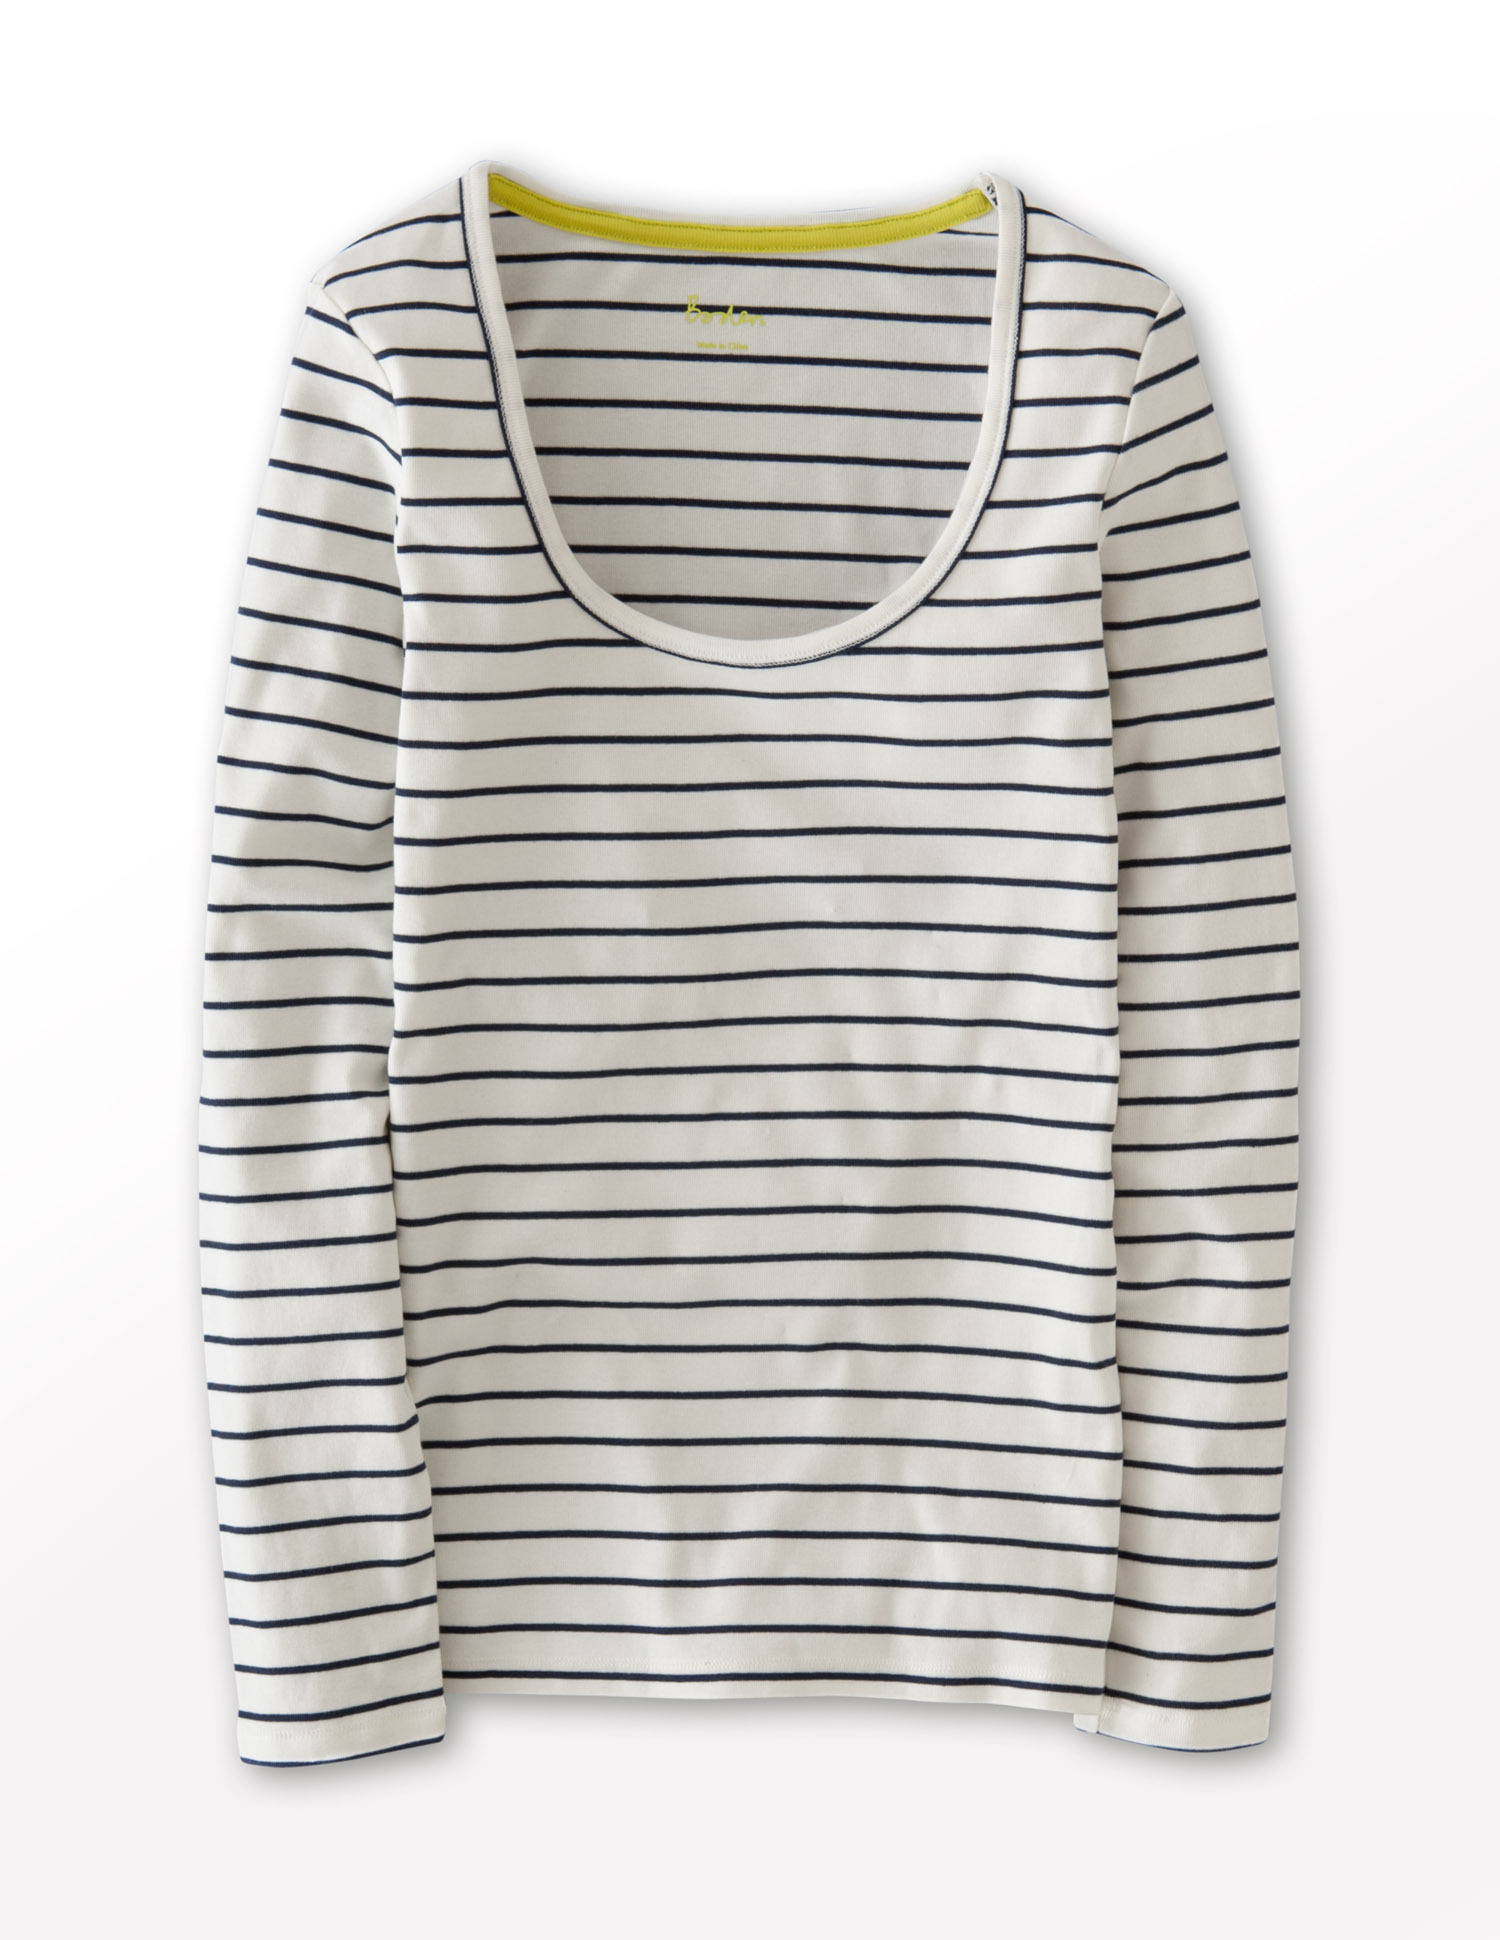 Scoop neck top, BODEN, £19